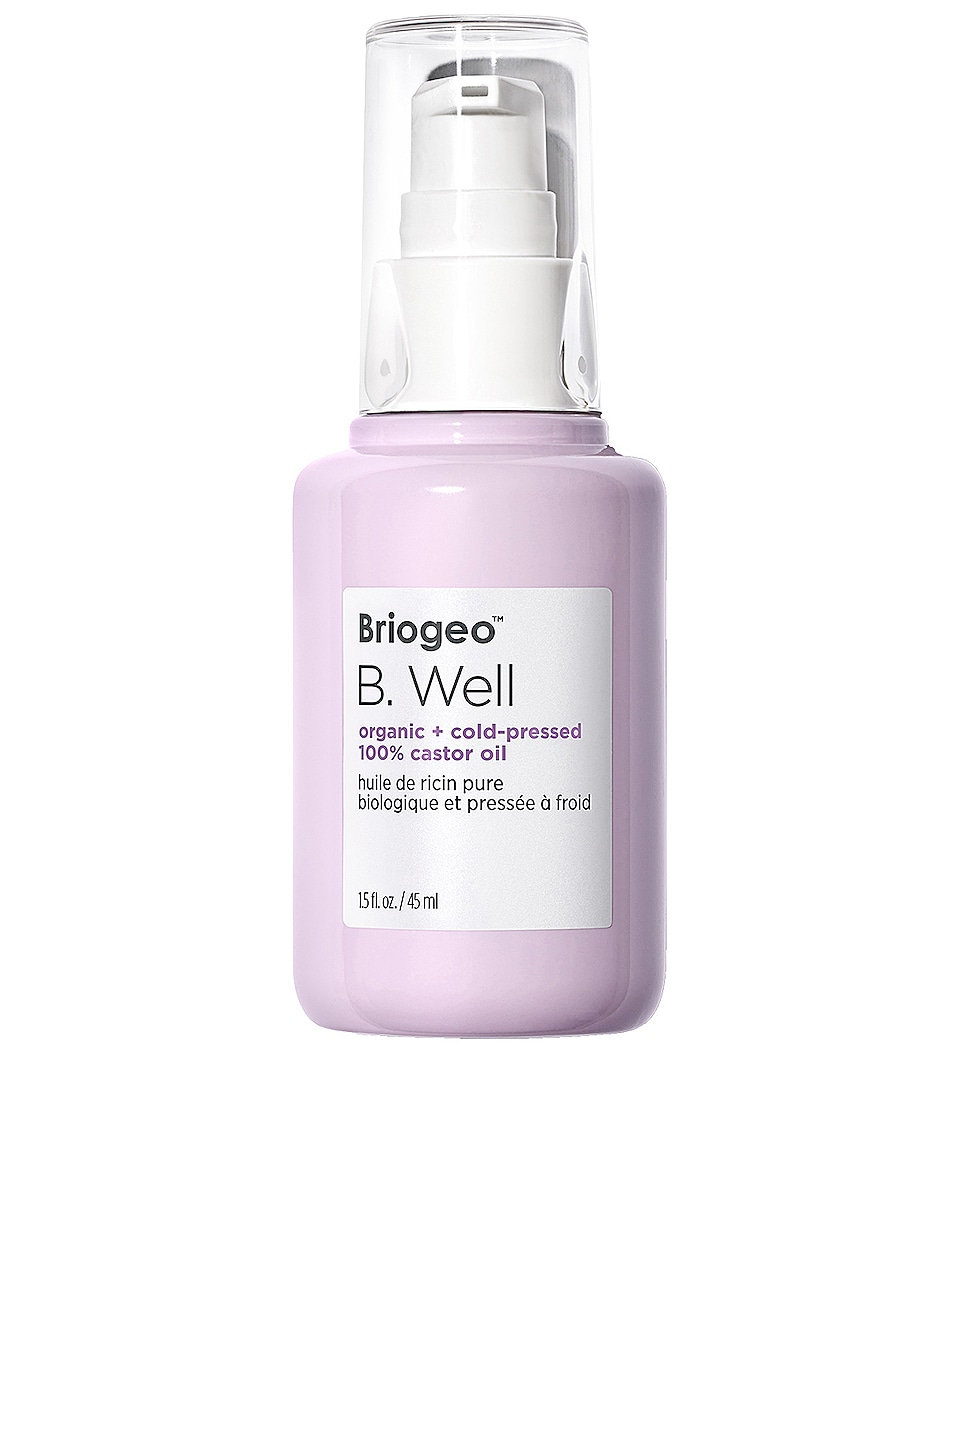 Briogeo B. Well Organic + Cold-Pressed 100% Castor Oil